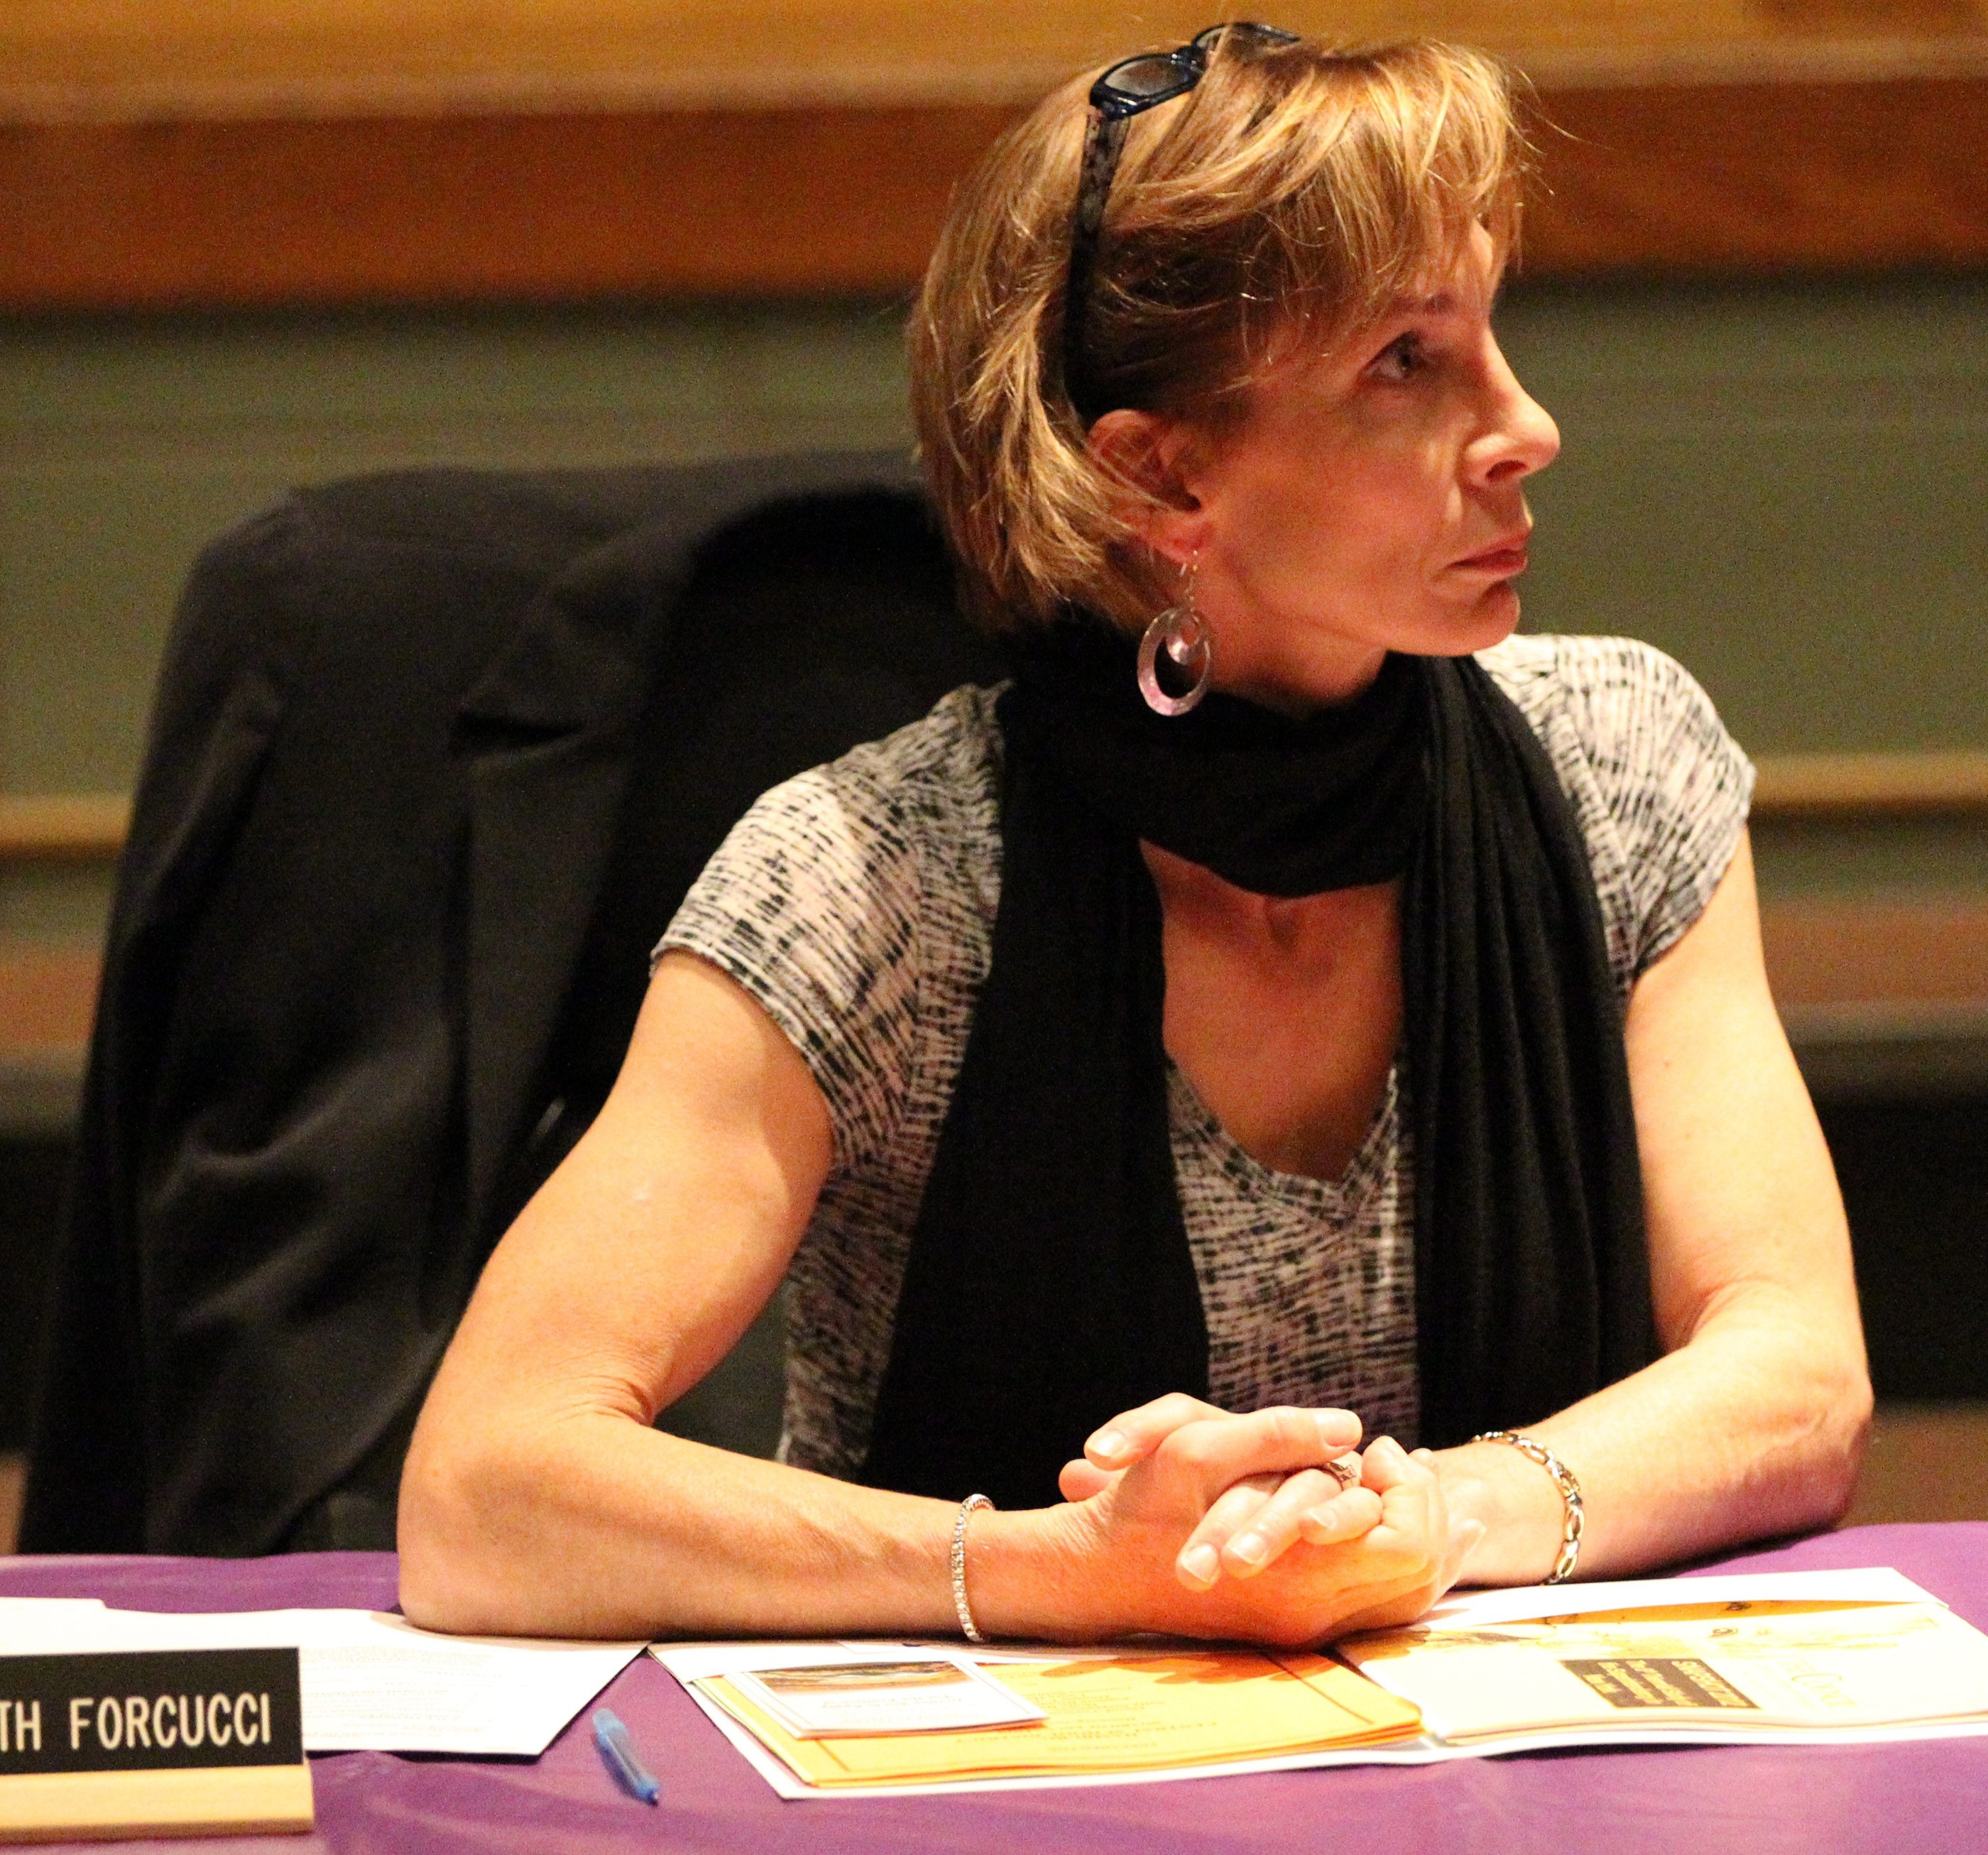 Catherine Schrauth Forcucci argues that School Board President David Yoviene should not have voted on the charges against her.  (James P. McCoy/ Buffalo News file photo)